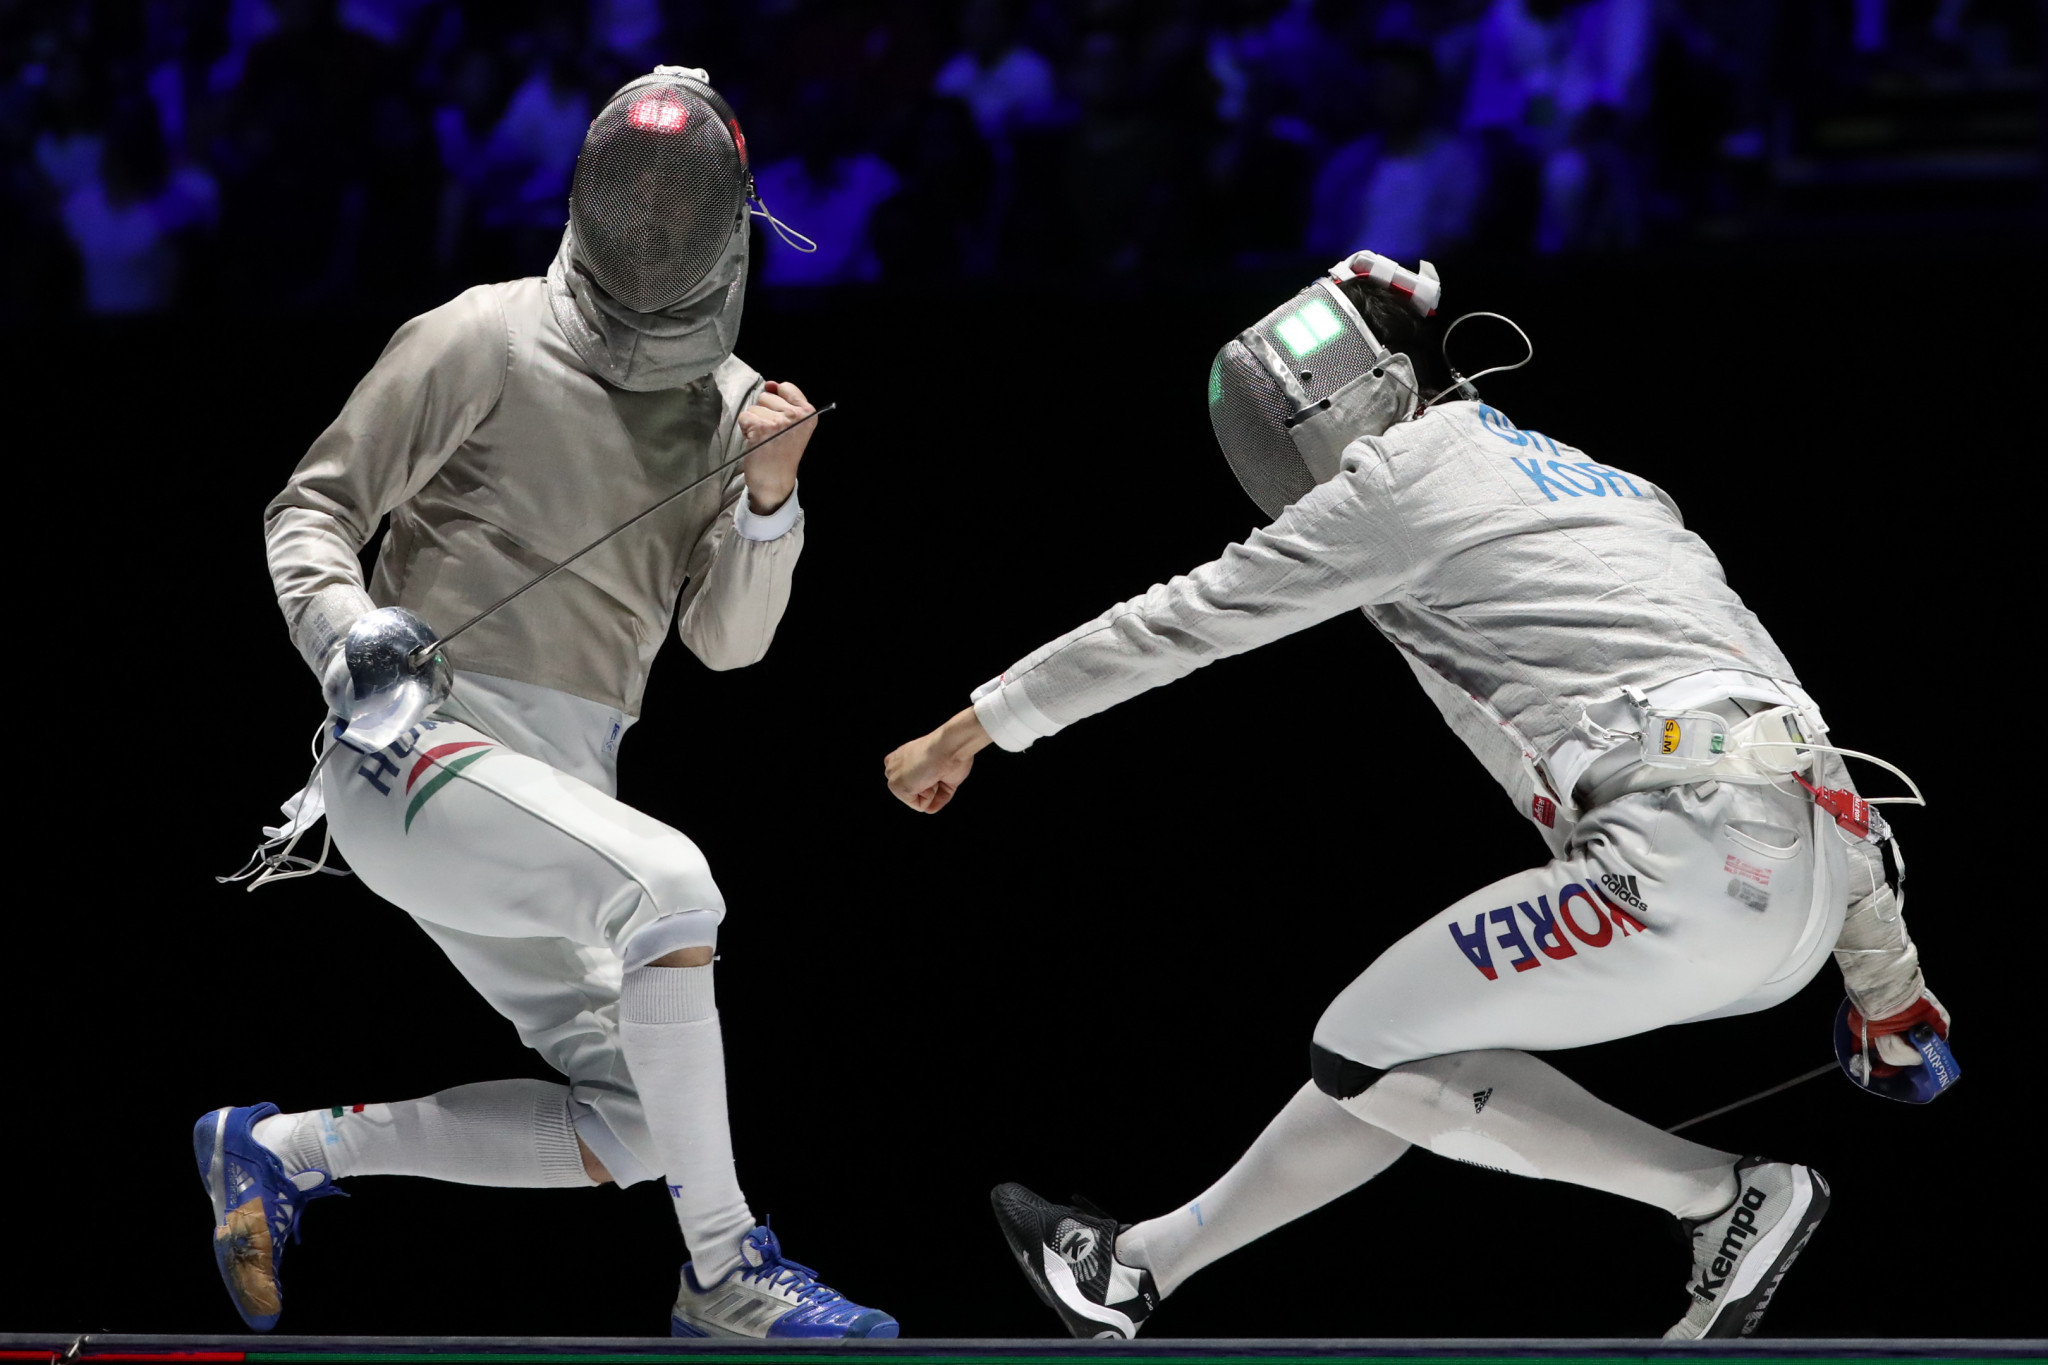 The world's best fencers in the sabre discipline are set to battle it out in Budapest ©Getty Images